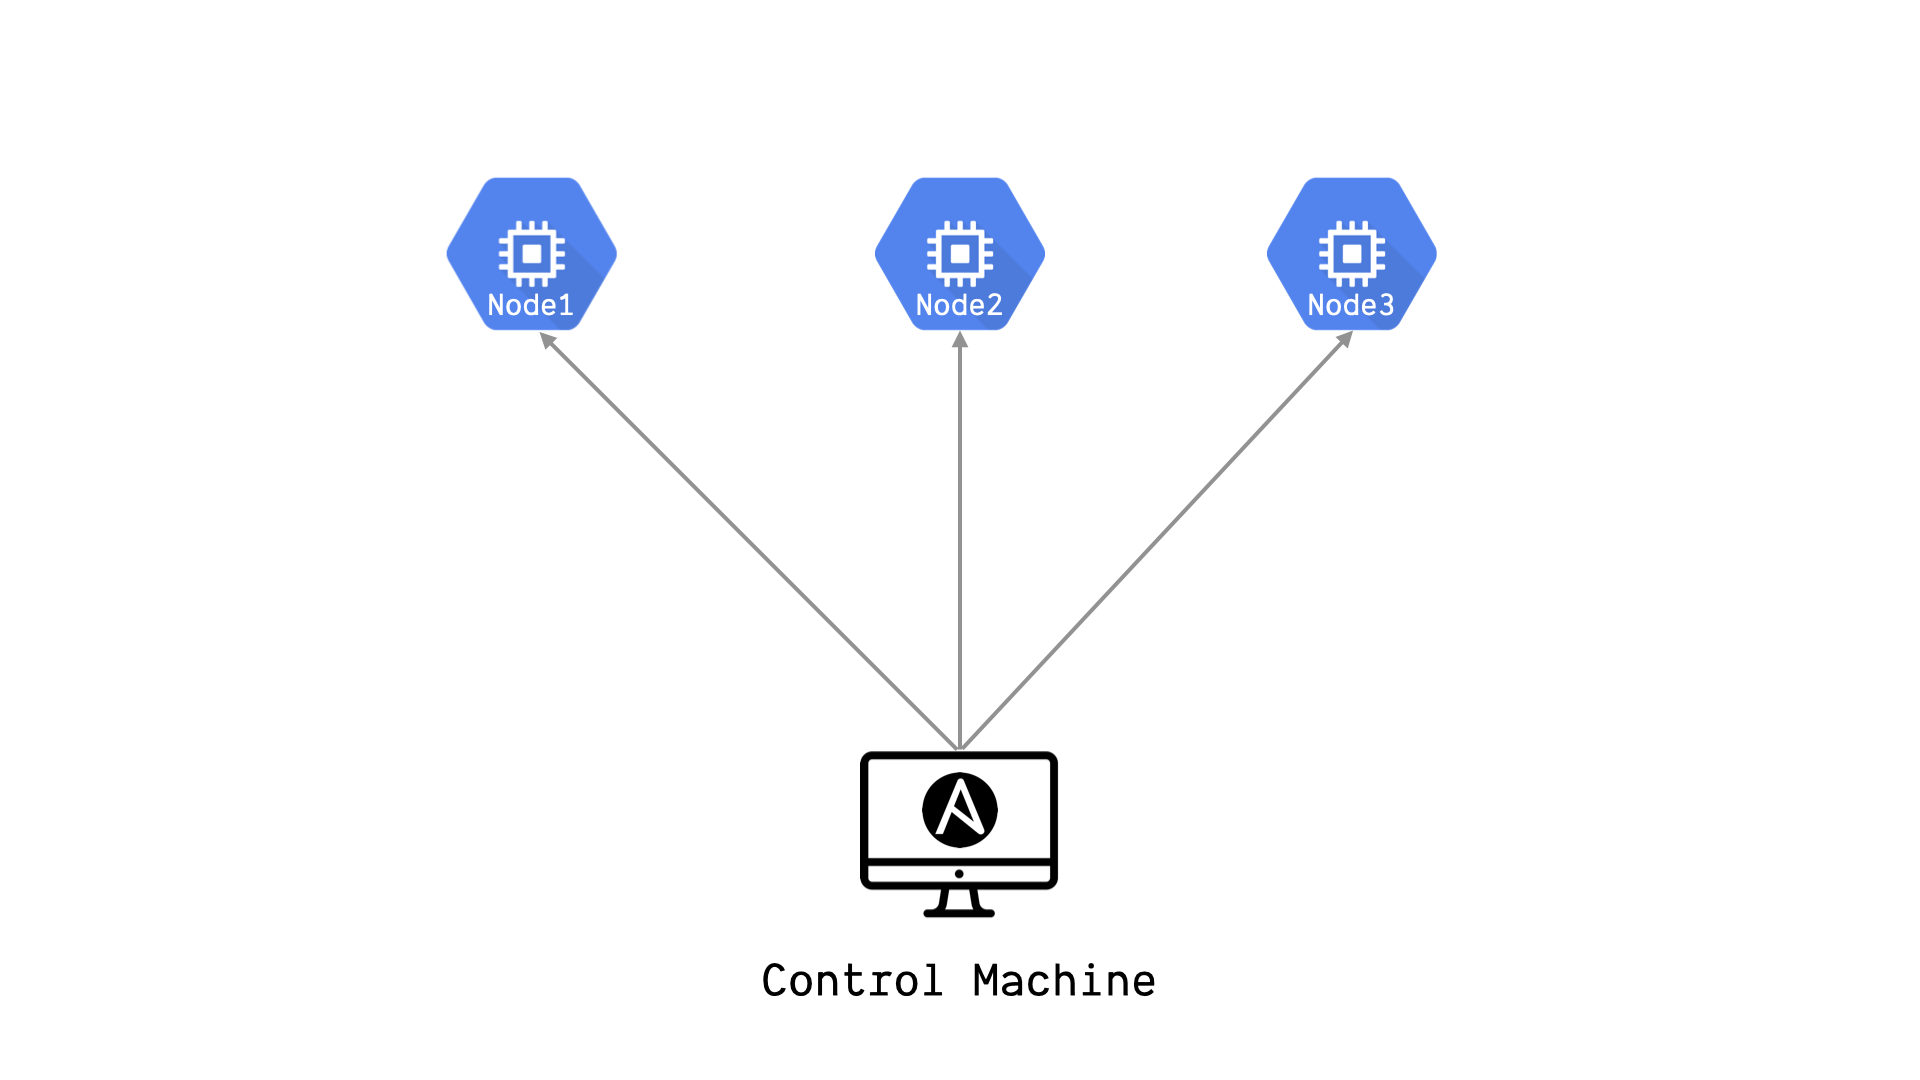 Ansible control machine and nodes